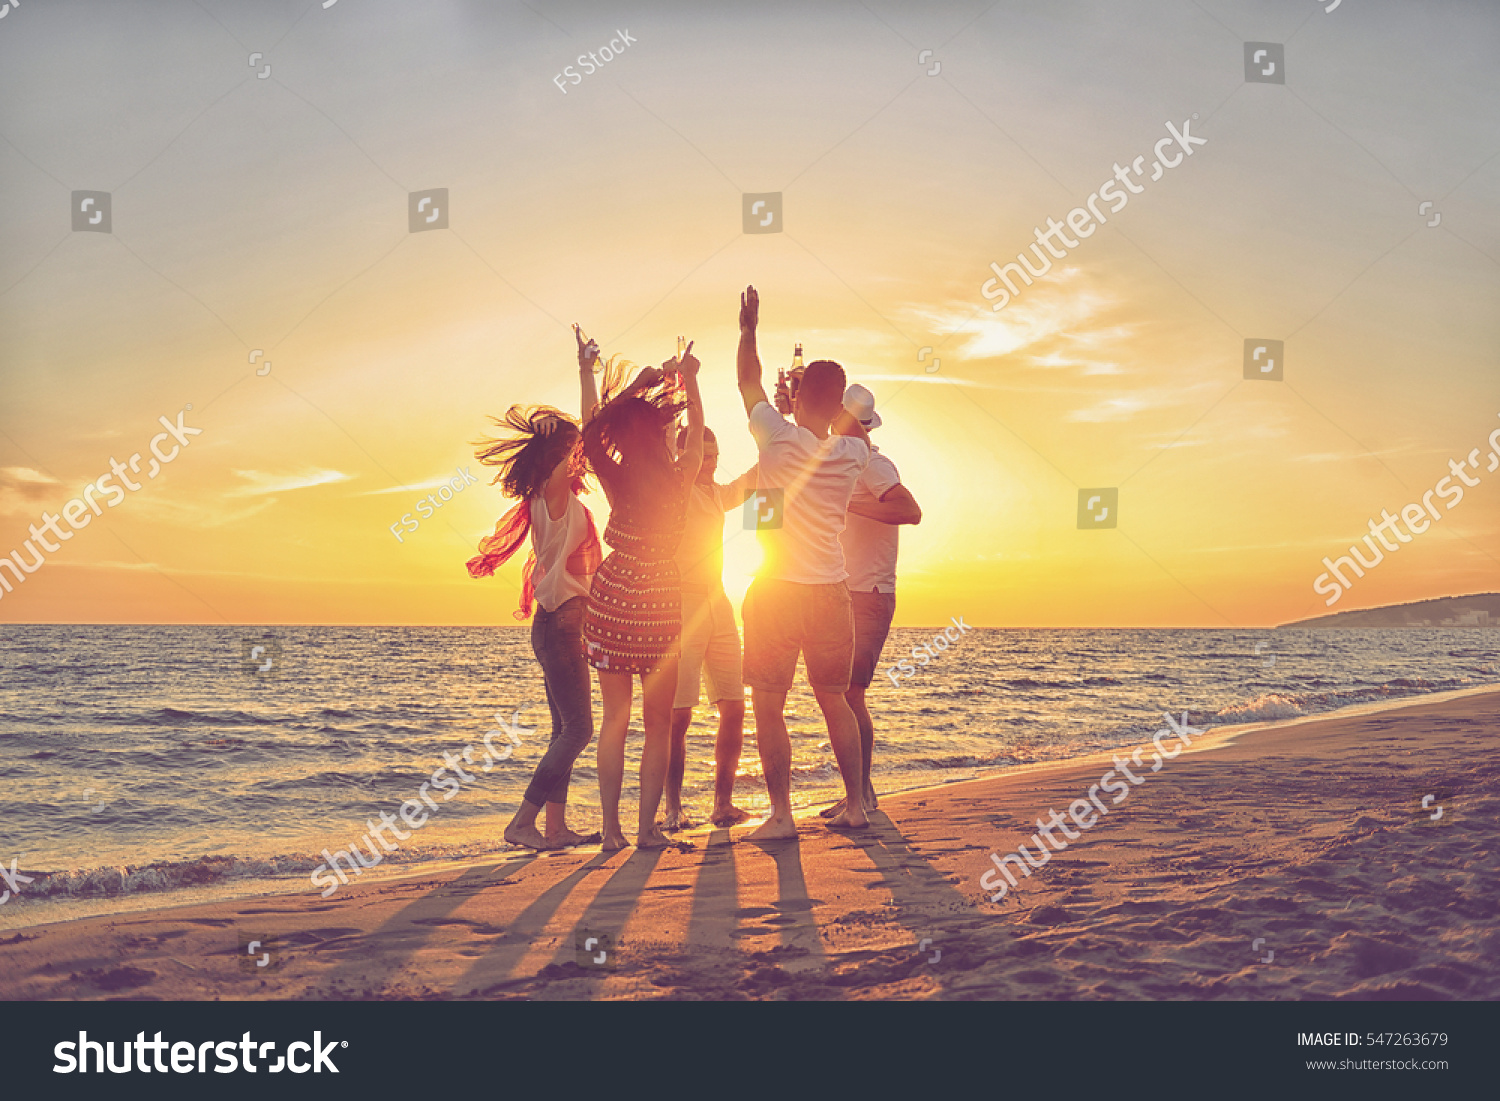 group of happy young people dancing at the beach on beautiful summer sunset #547263679